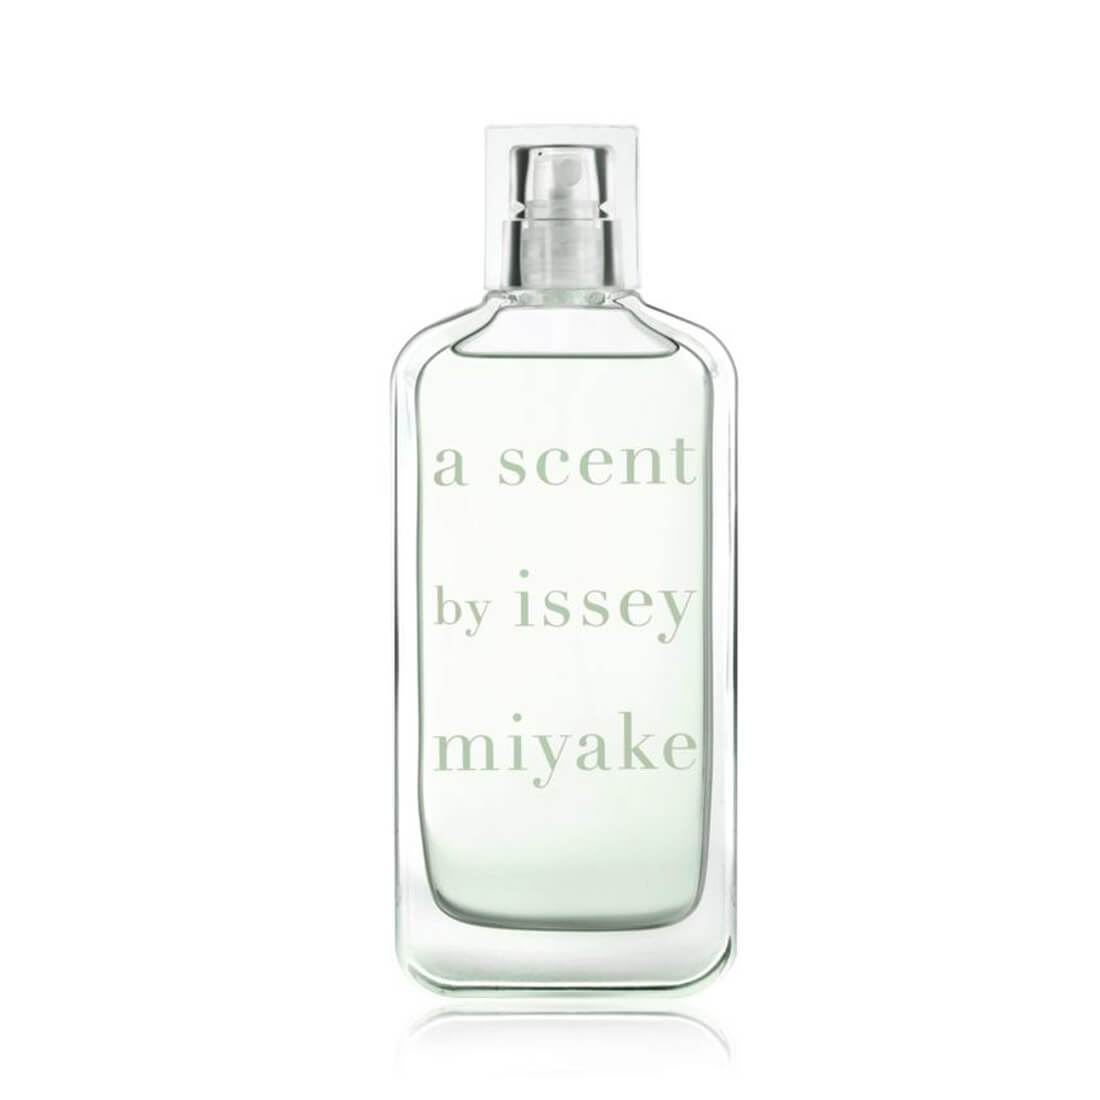 Issey Miyake A Scent by Issey Miyake EDT For Women - 50ml